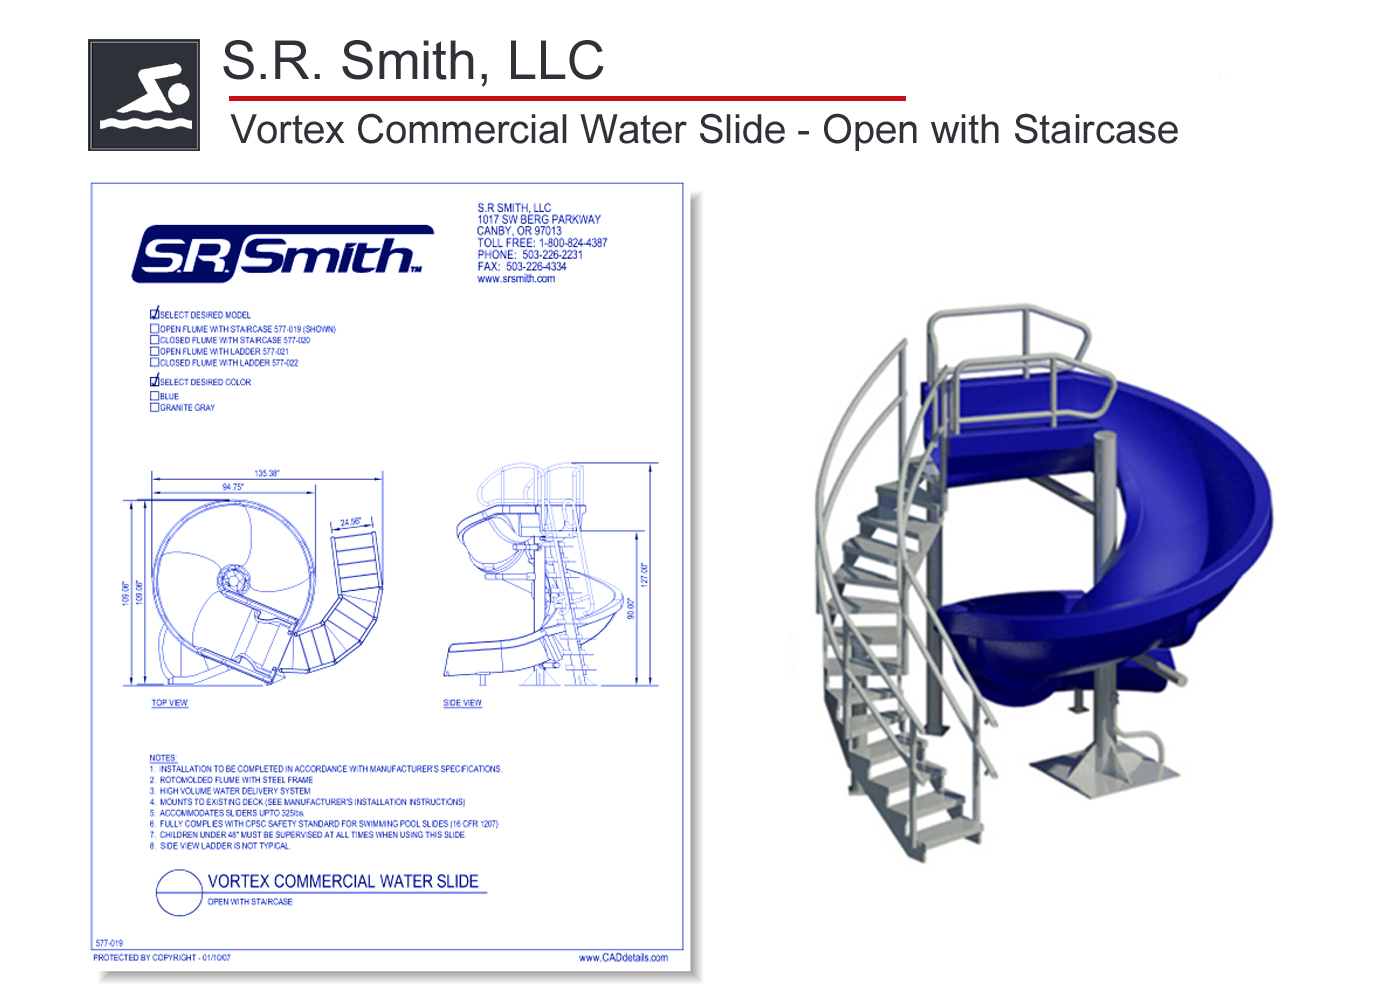 577-019 Vortex Commercial Water Slide - Open with Staircase